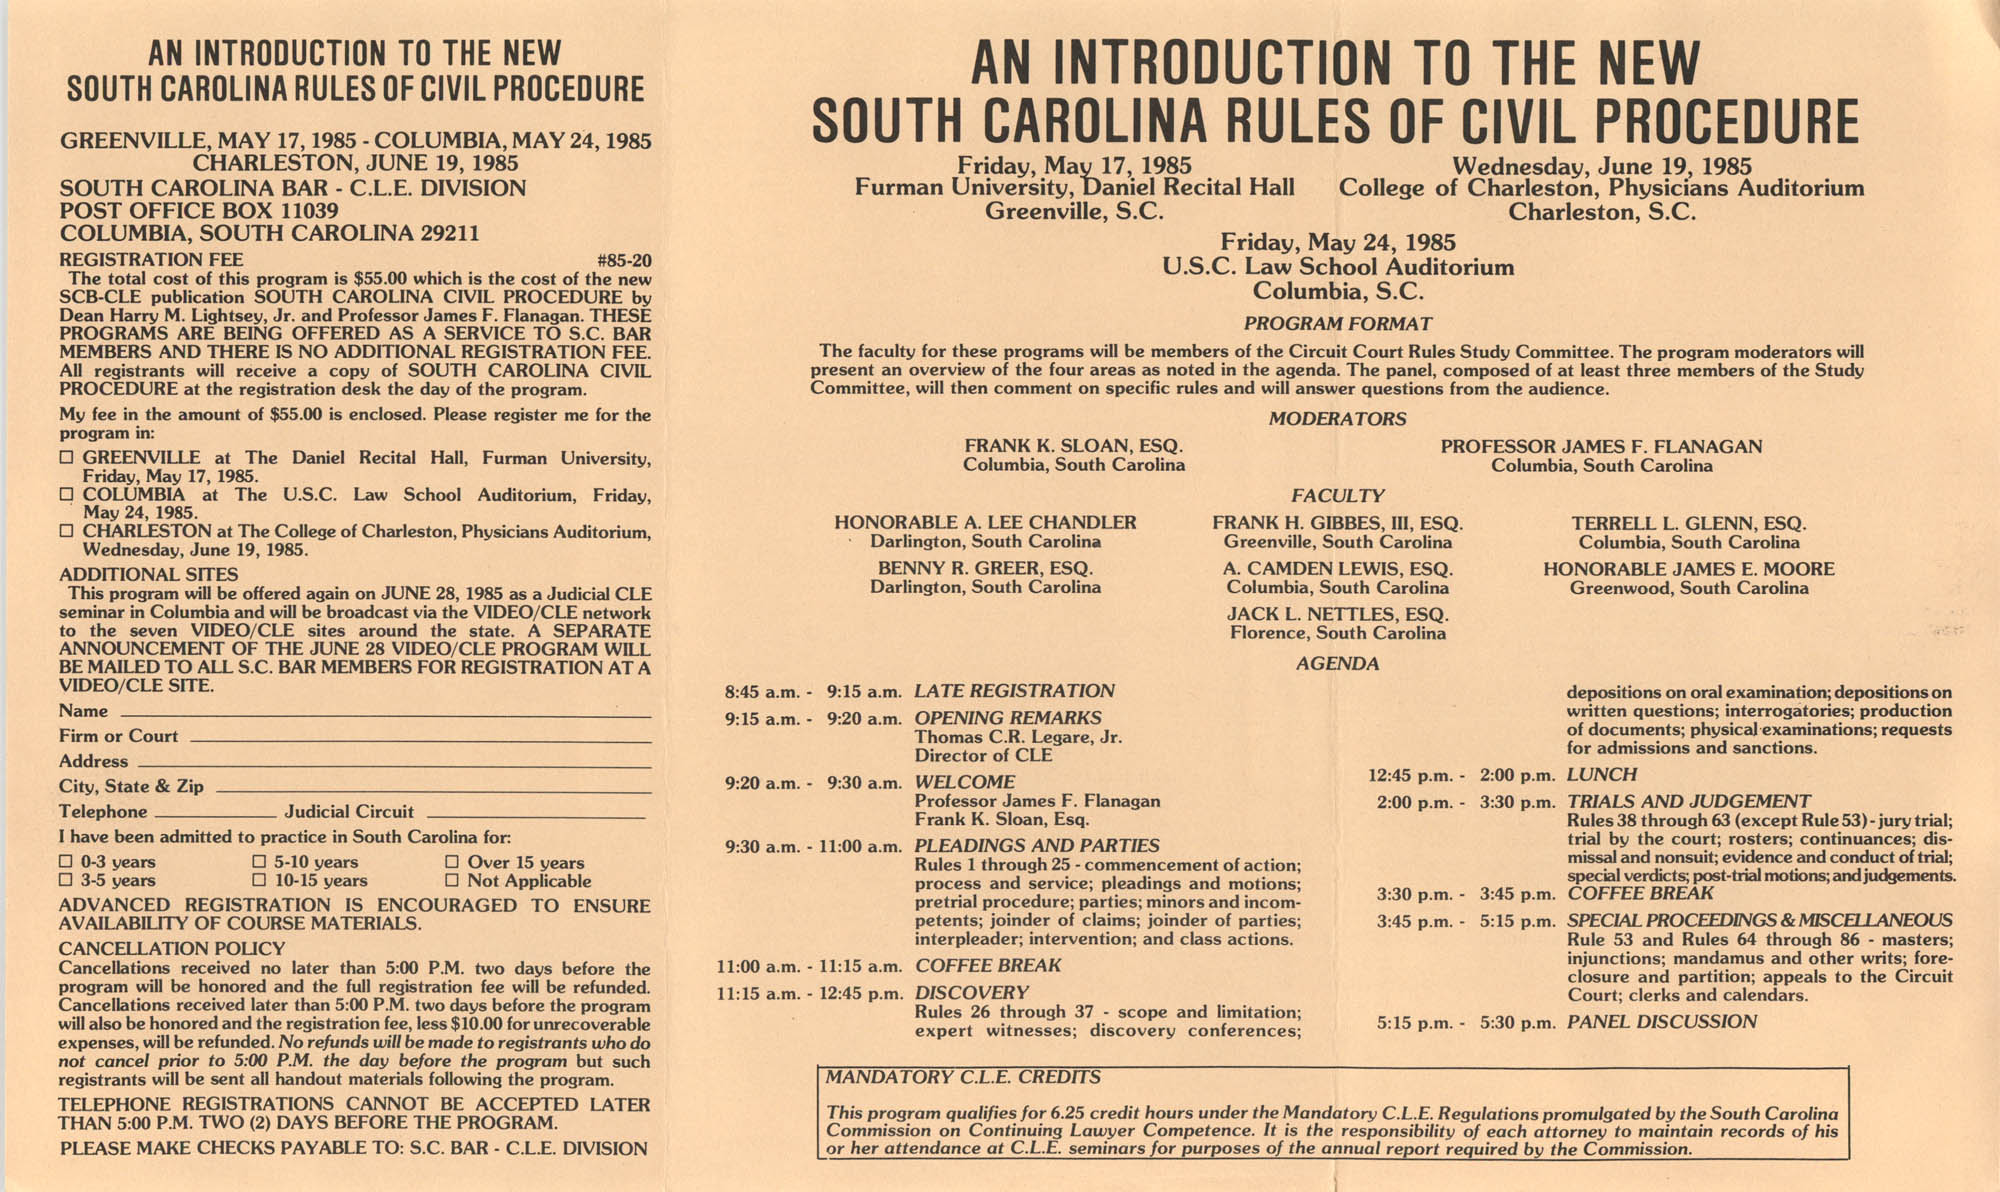 An Introduction to the New South Carolina Rules of Civil Procedure, Continuing Legal Education Seminar Pamphlet, 1985